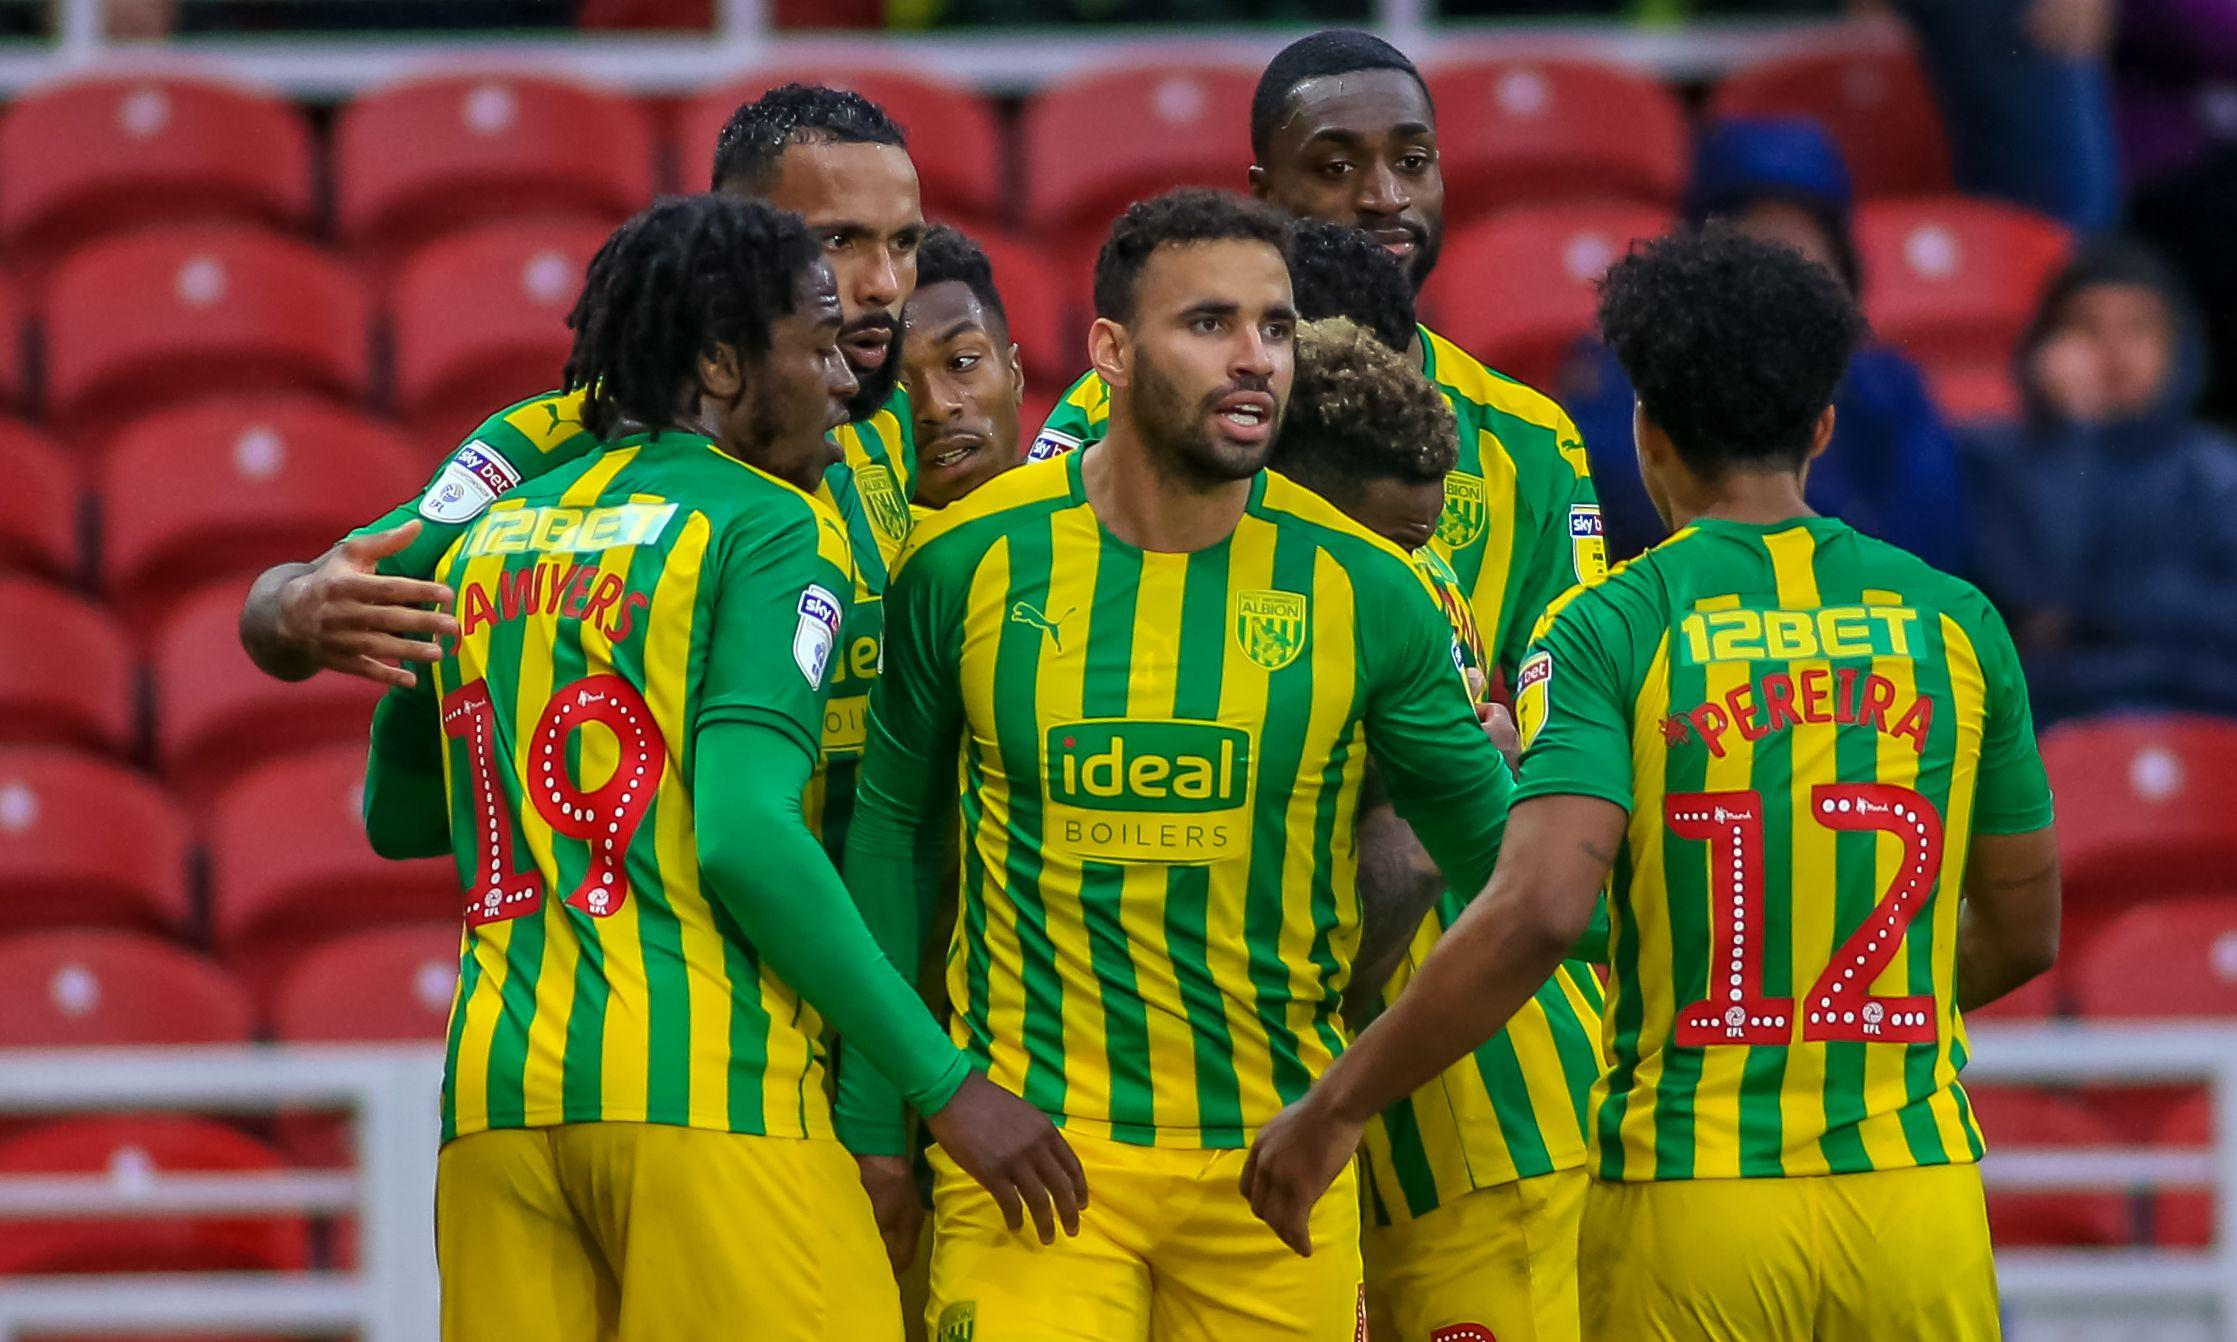 Hal Robson-Kanu strikes late against Middlesbrough to put West Brom top